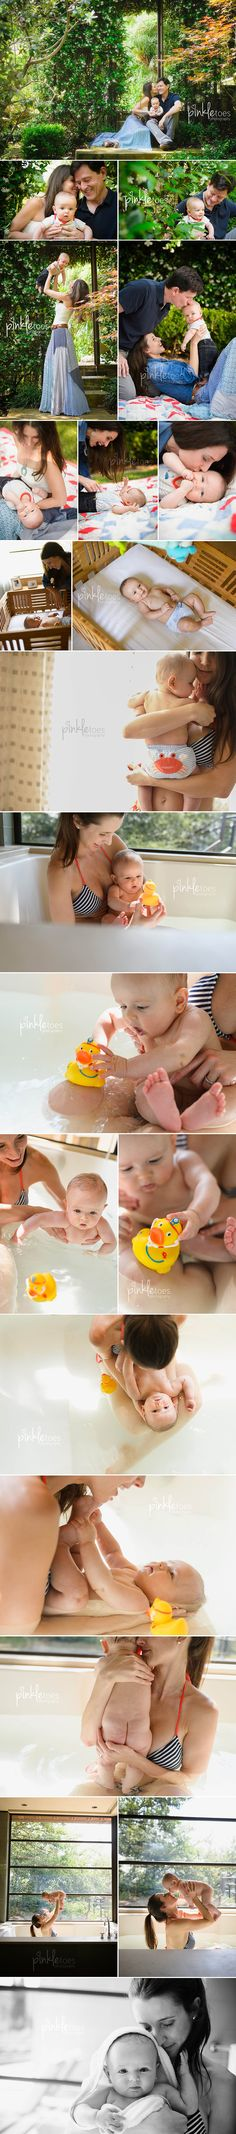 pinkle-toes. Love the lifestyle themed session!